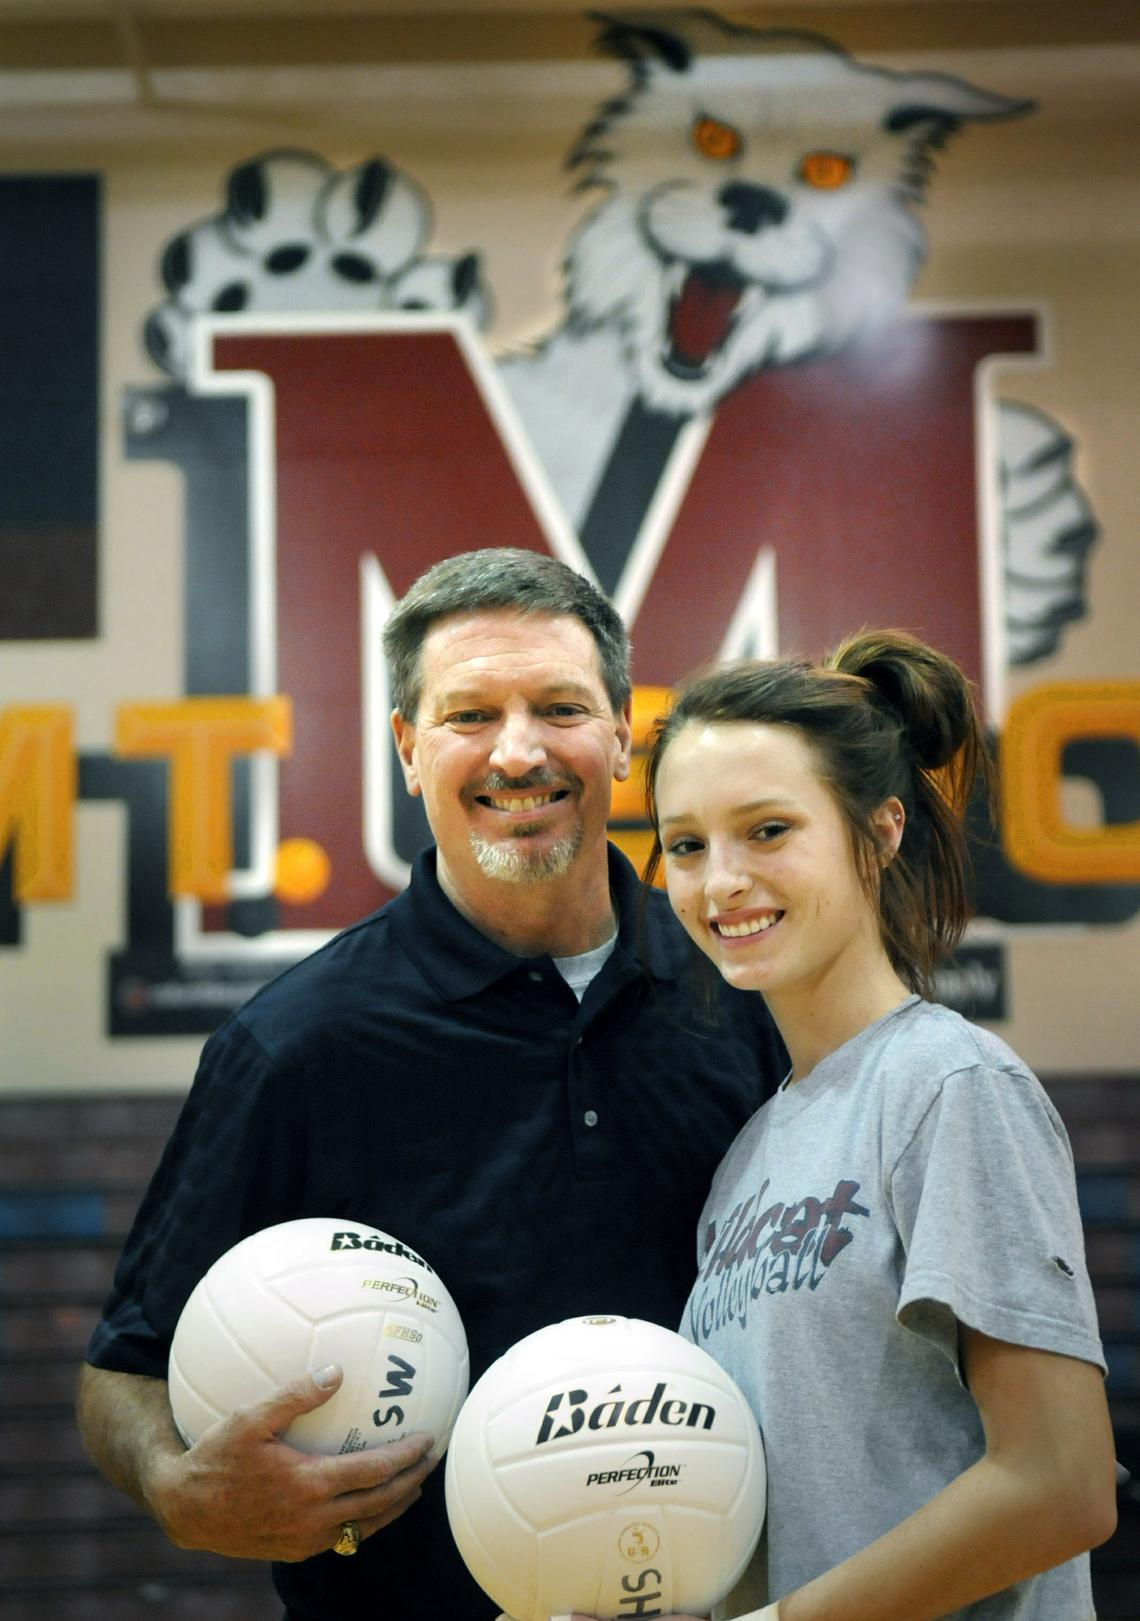 volleyball parent and child.jpg